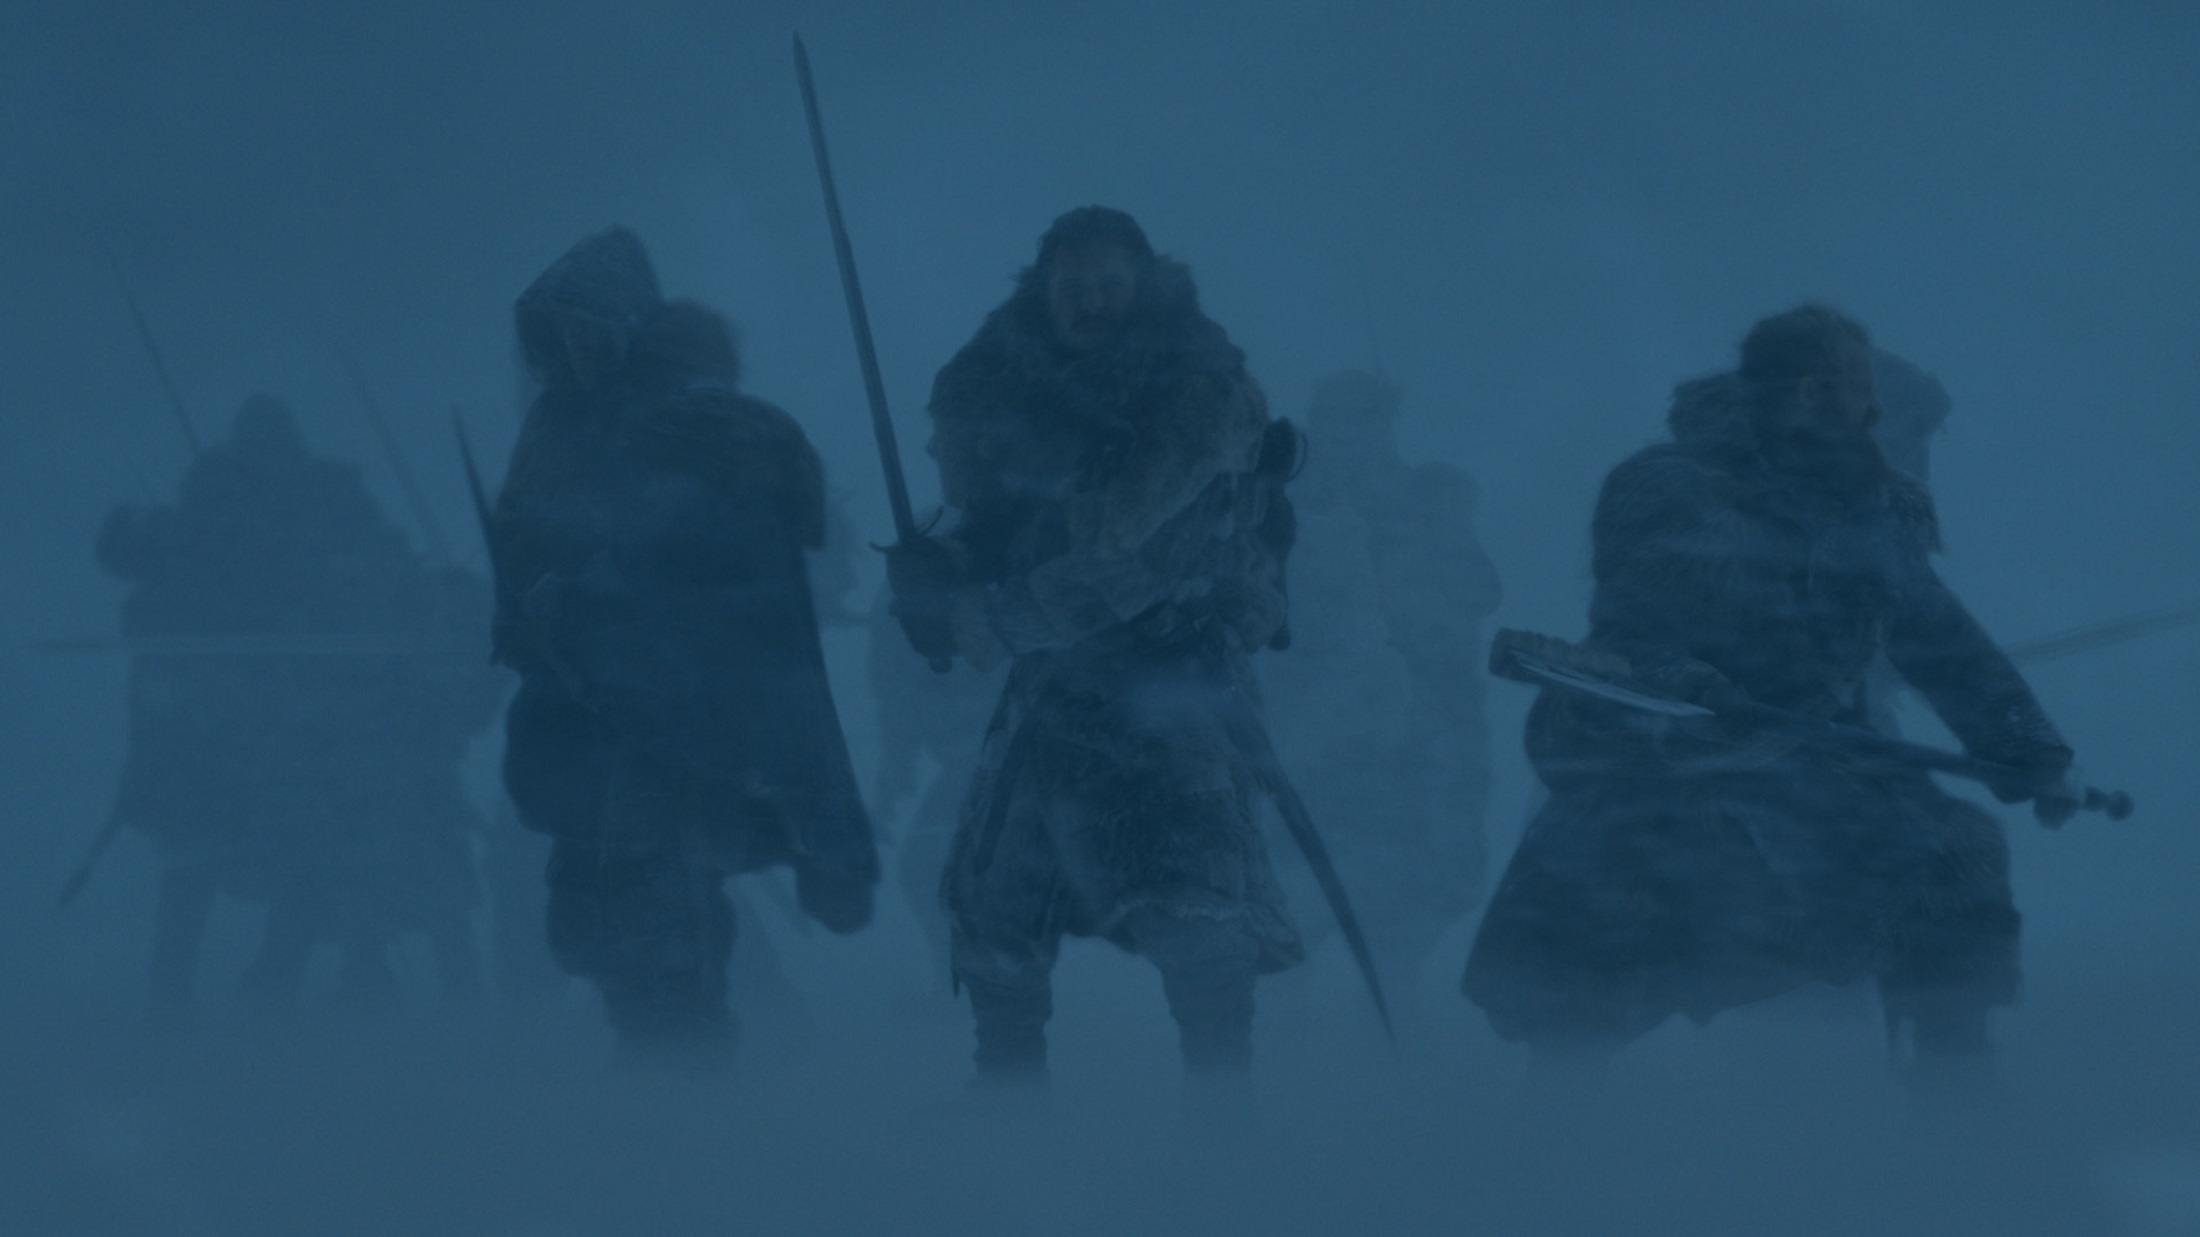 Beyond the Wall group